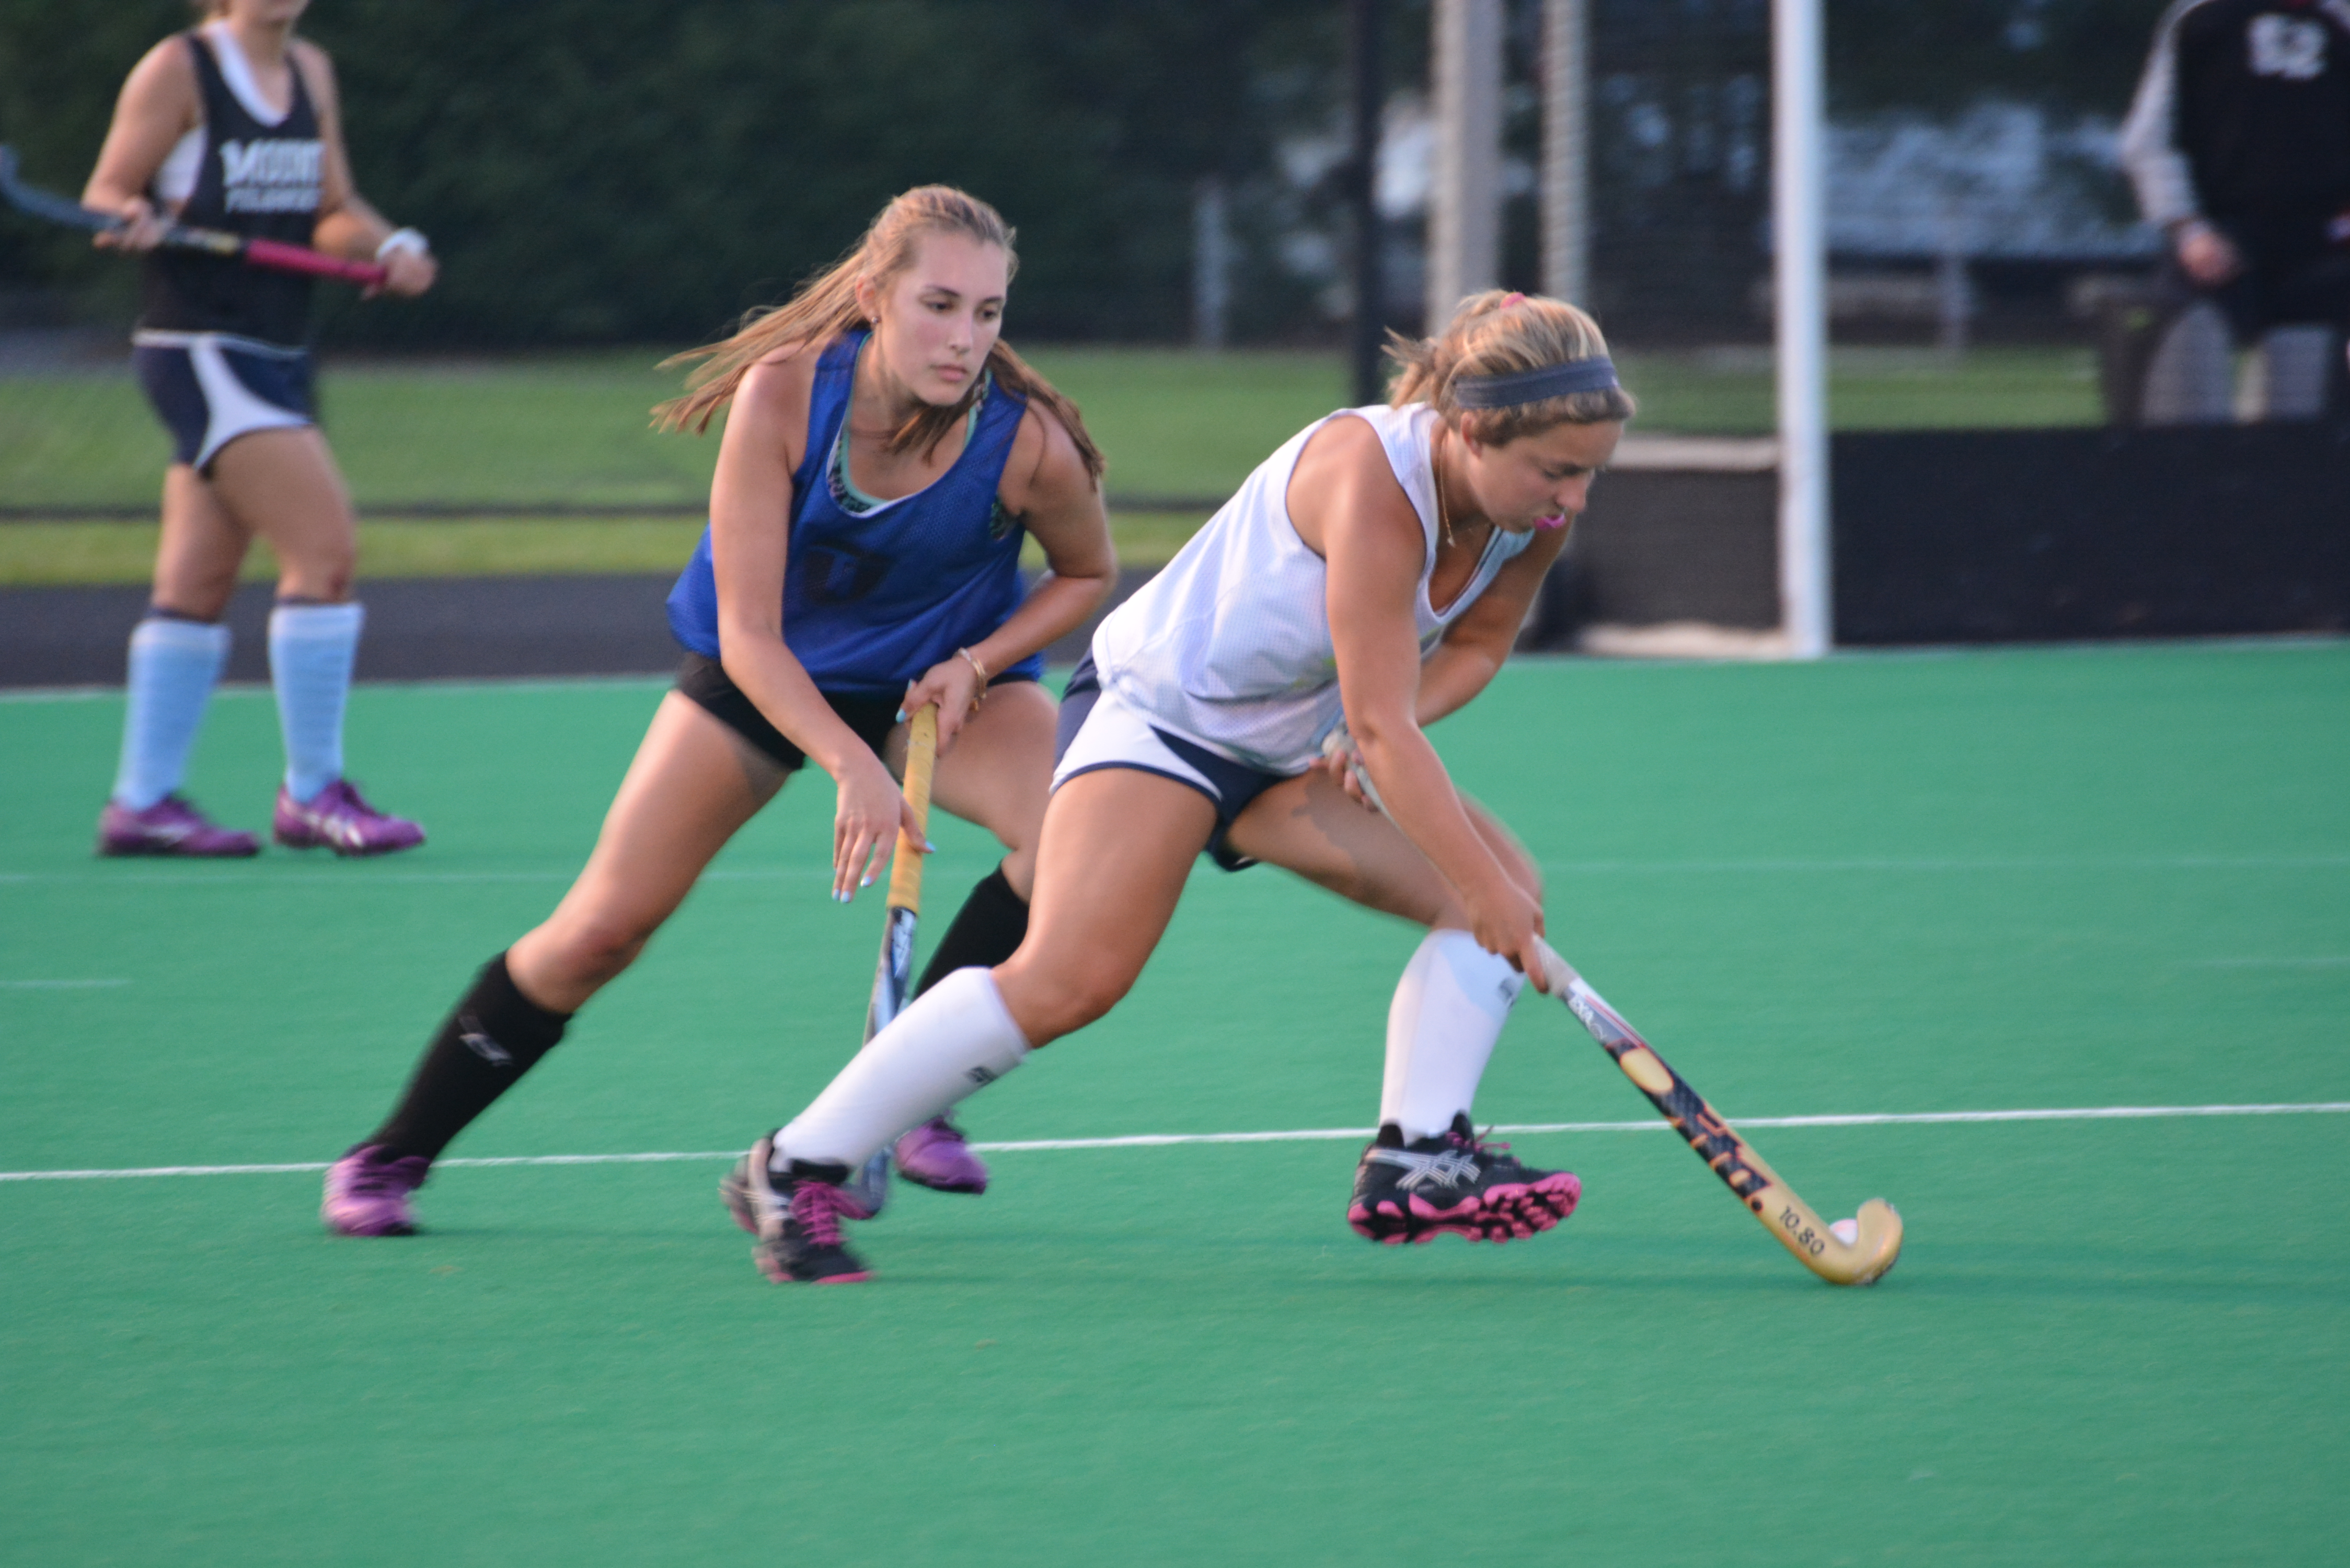 Liza Welch Shows Her Defensive Skills In A Scrimmage